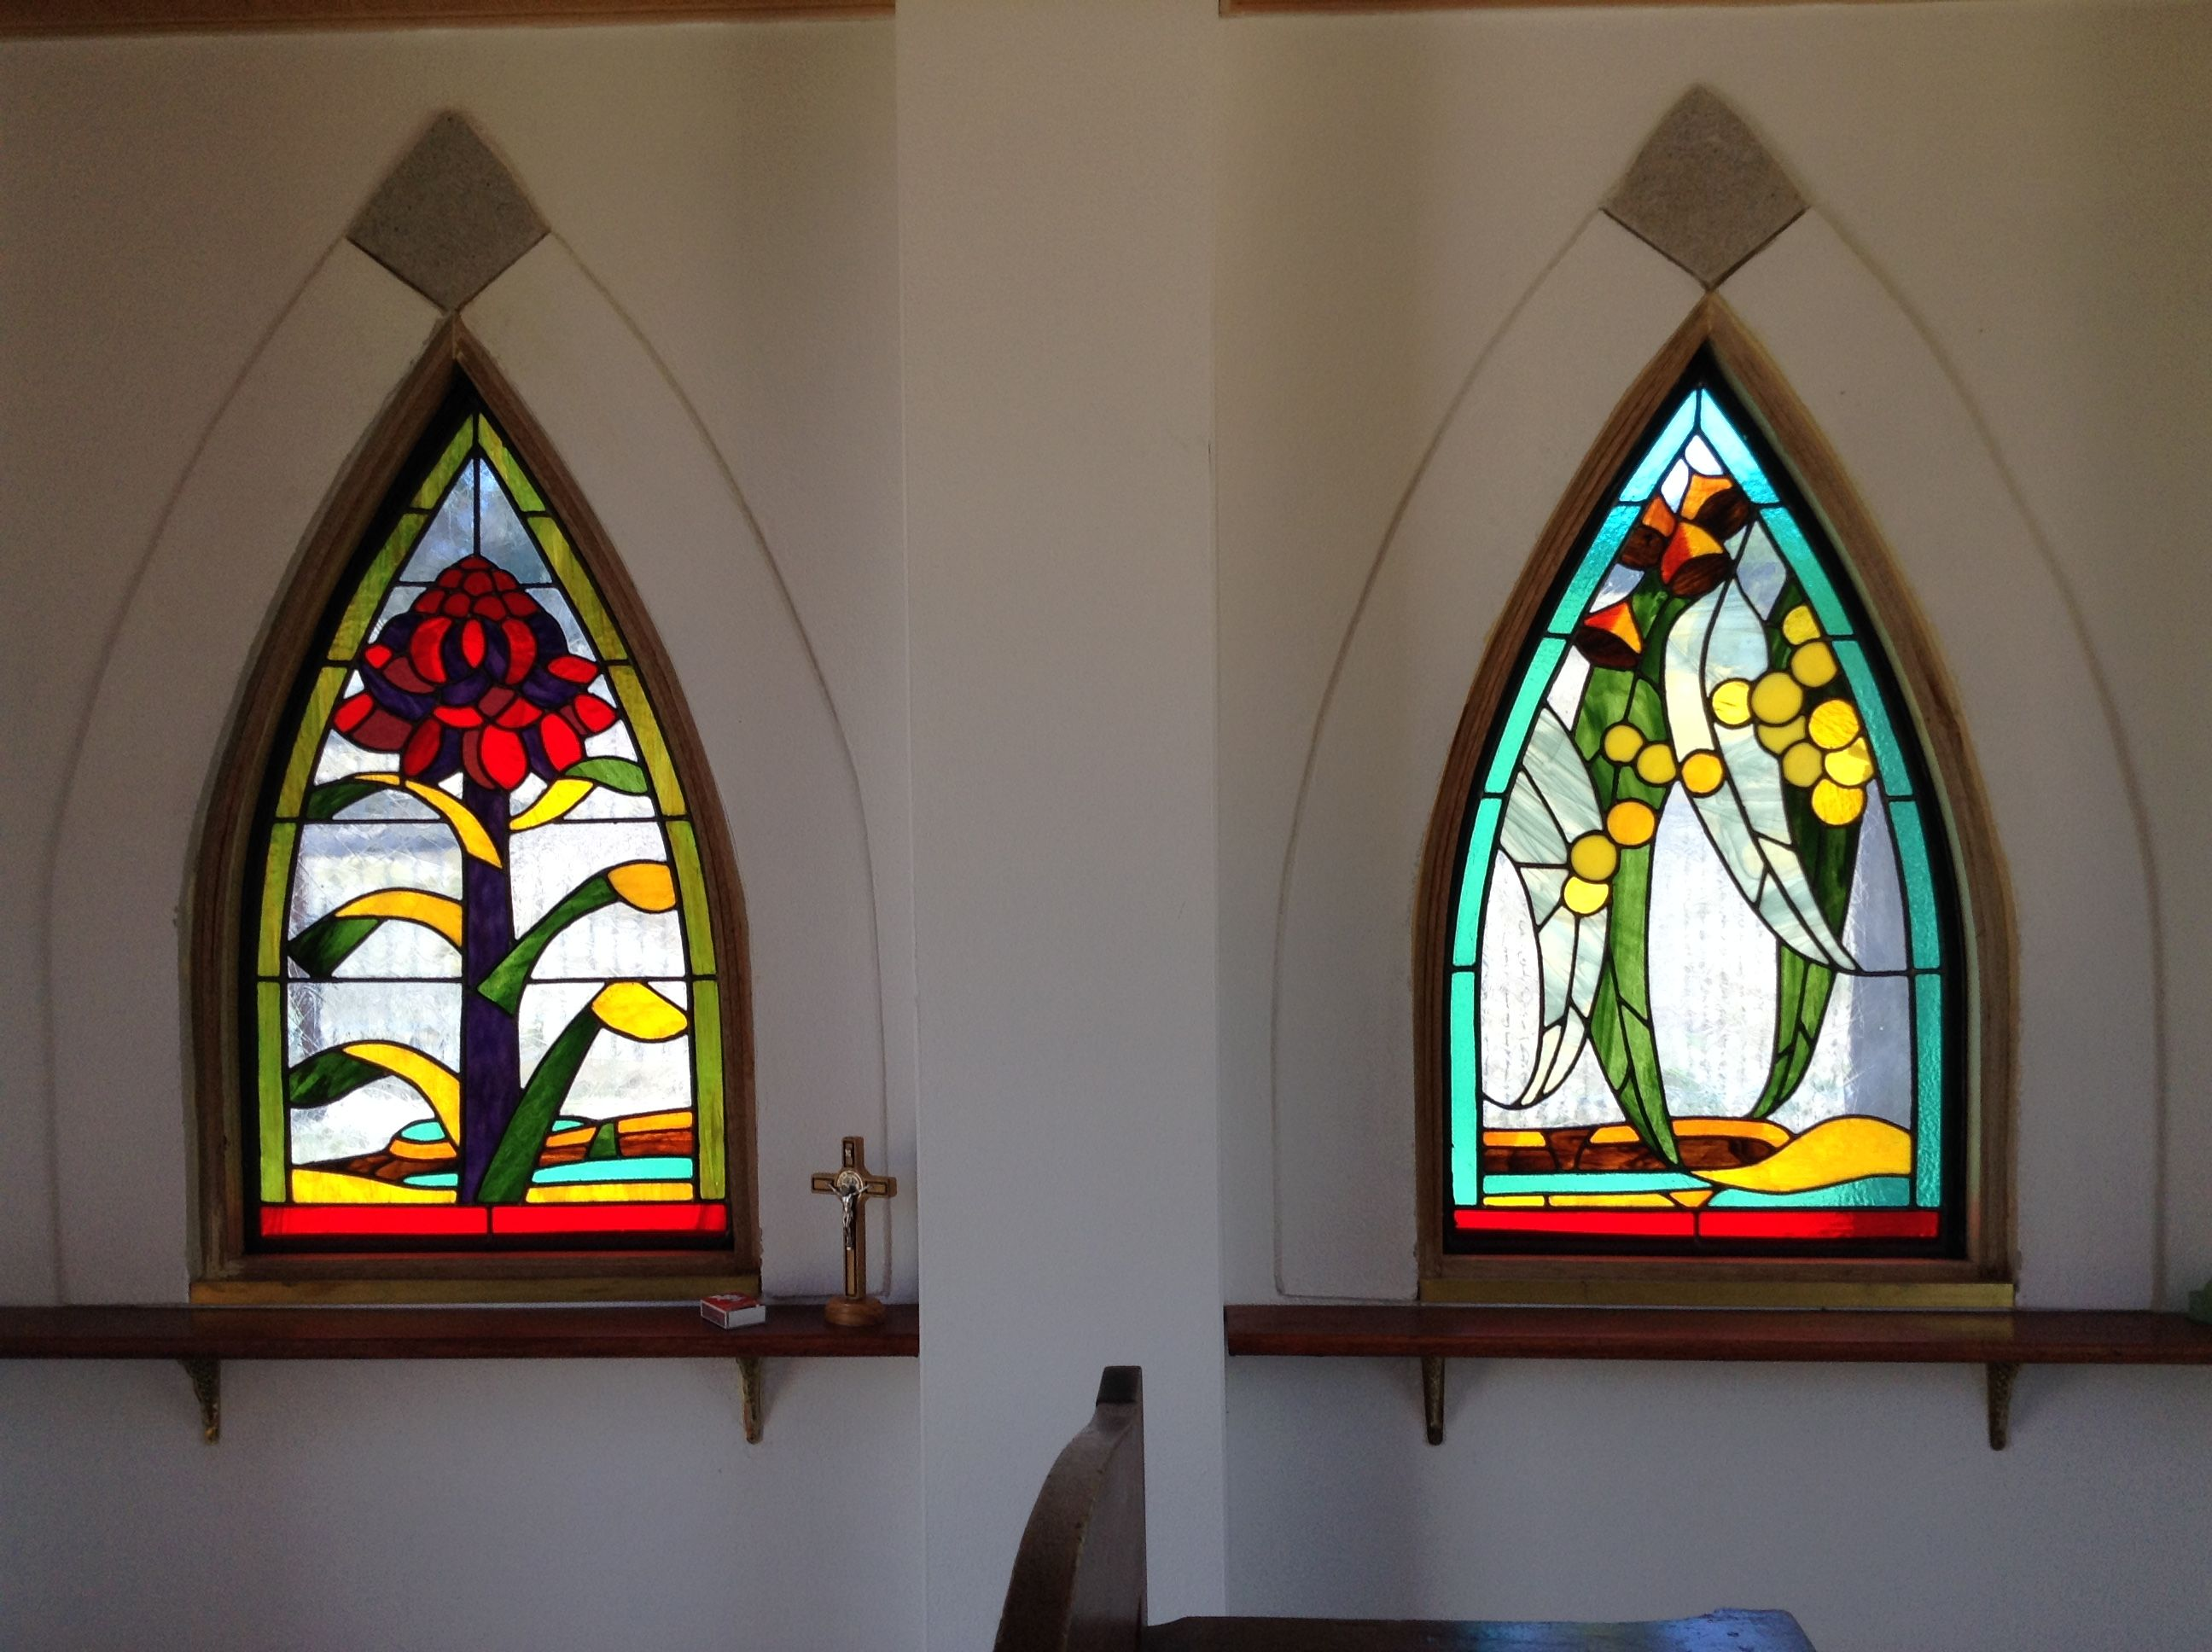 Lead Light Windows. Designed and constructed by Helen Bonica. Installed at The Tiny Chapel in The Kanimbla Valley NSW.